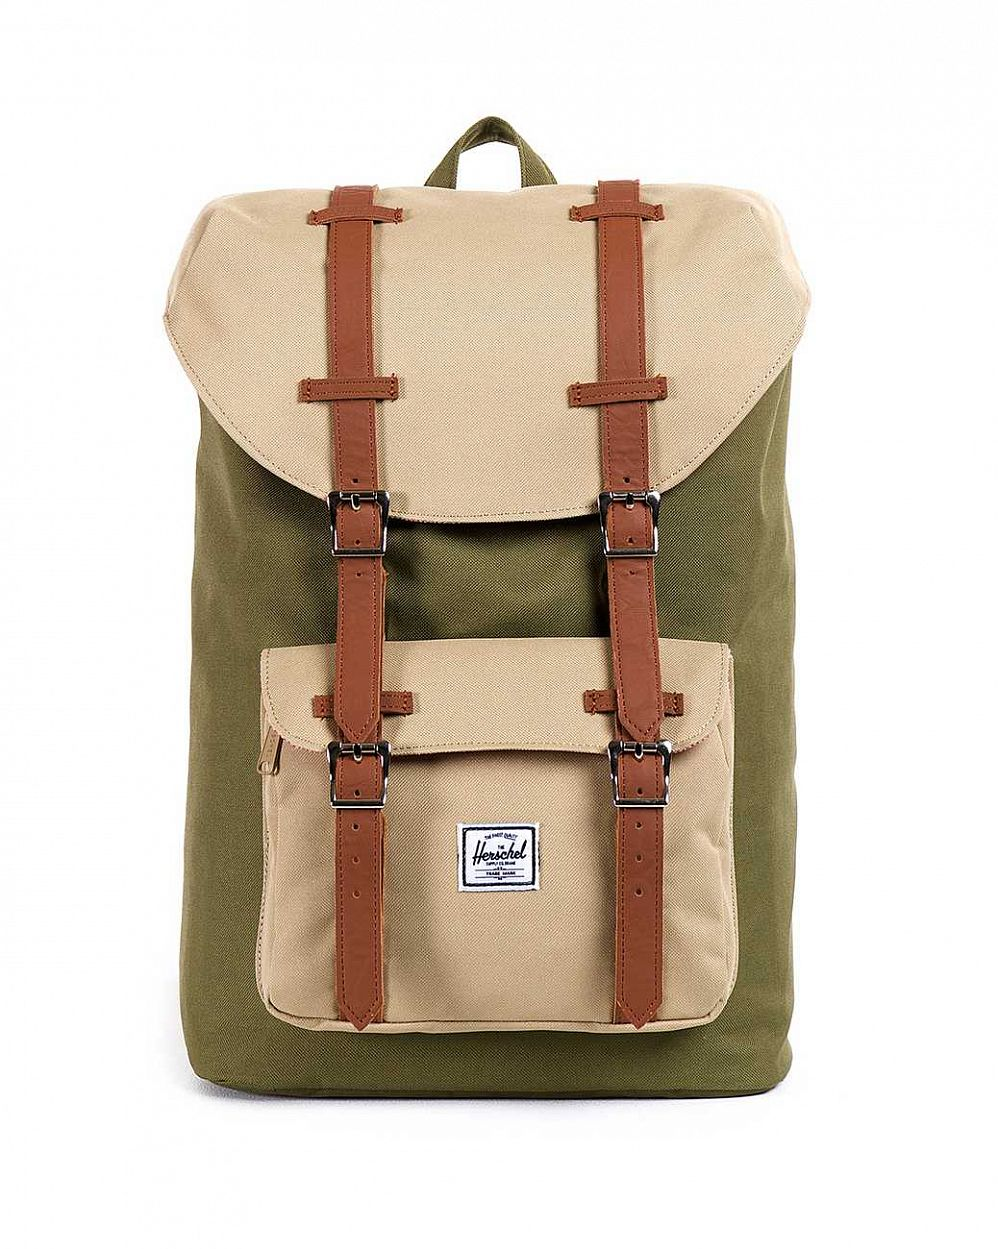 купить Рюкзак Herschel Little America Mid-Volume Army Khaki в Москве